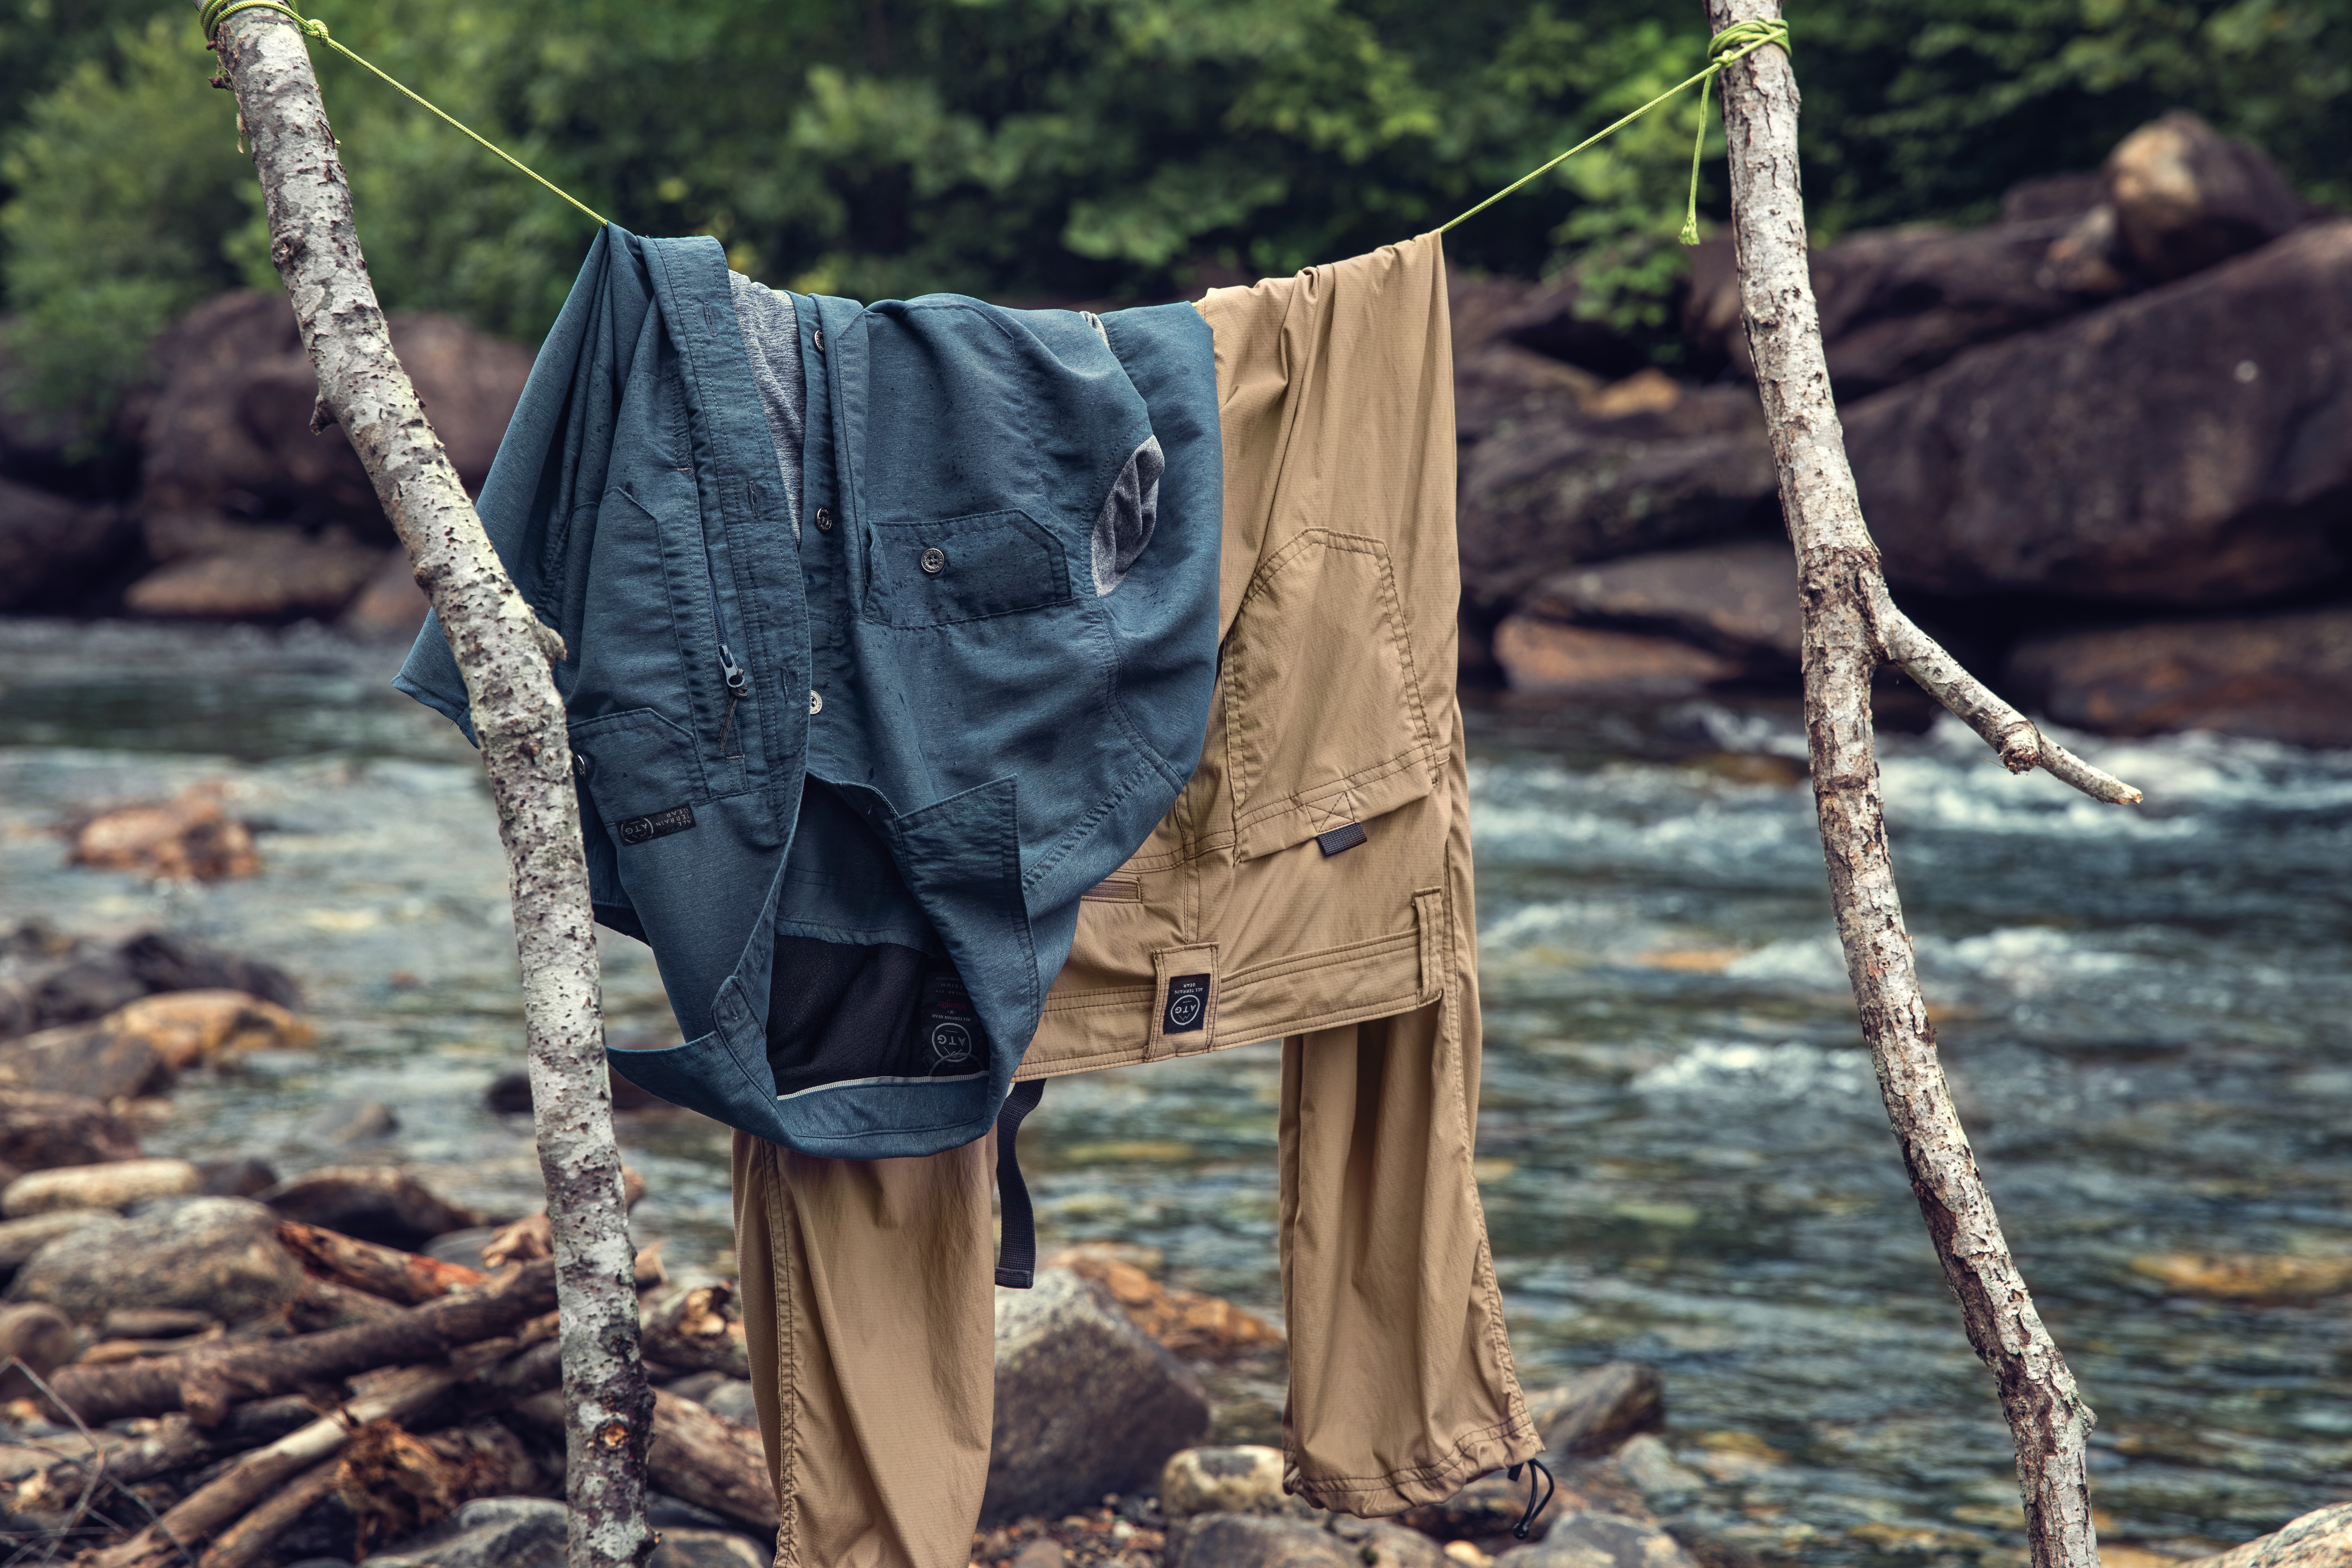 Wrangler Announces Major Expansion of Its Outdoor Apparel Line